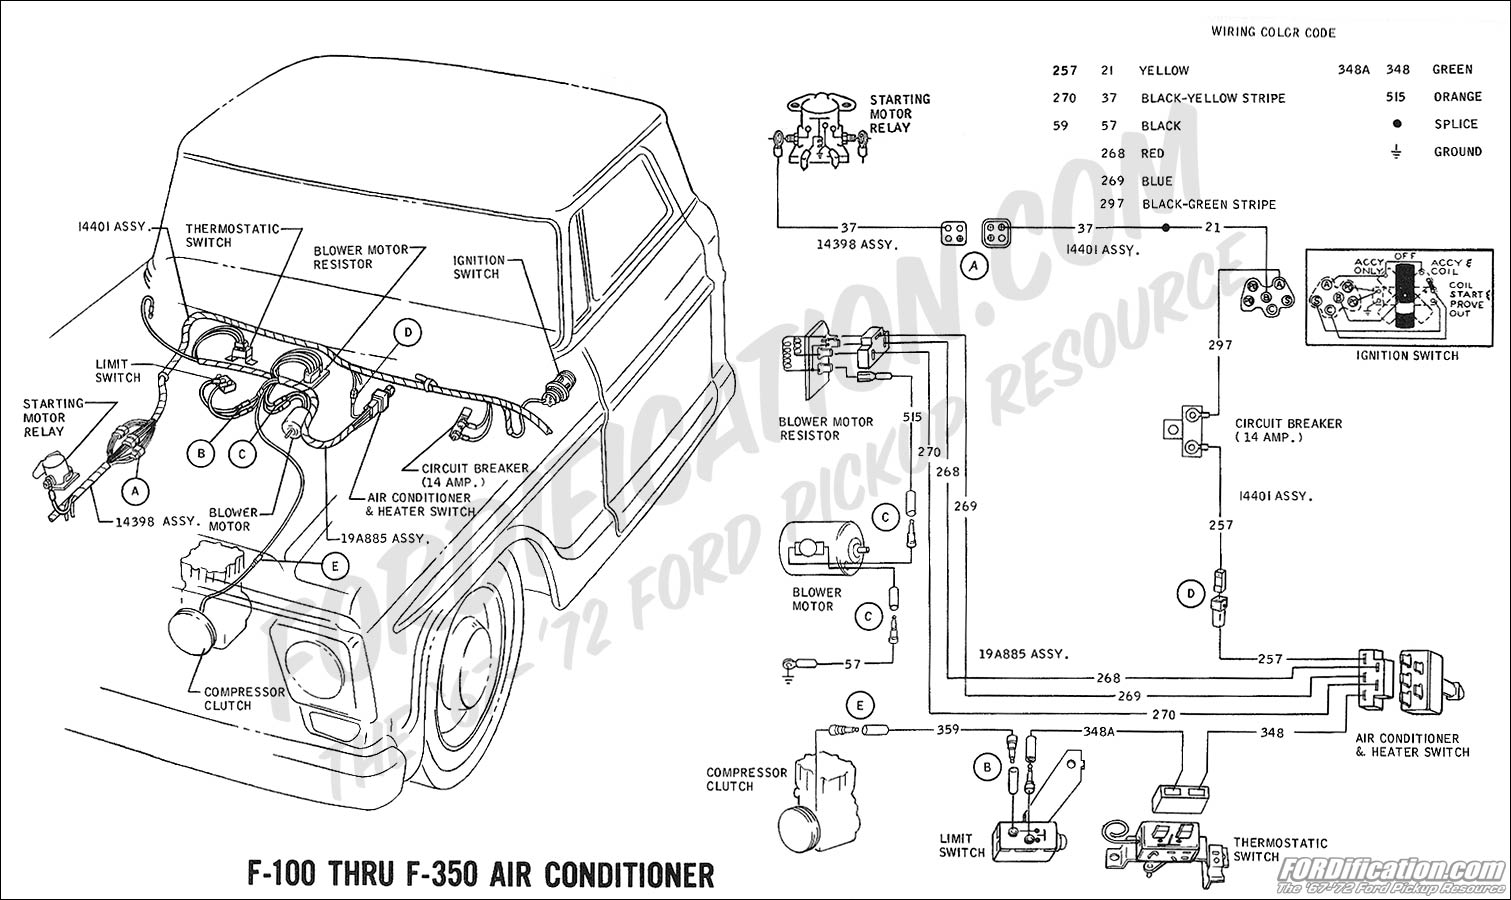 Ford F150 Dashboard Diagram | Wiring Diagram  Ford F Wiring Diagram on 1977 ford f150 firing order, 1977 ford f150 frame, 1977 ford f150 power steering, 1978 ford truck wiring diagram, 1977 ford maverick wiring diagram, 1977 ford ltd wiring diagram, 1979 ford f-150 wiring diagram, 1977 ford f150 cover, 1977 ford f150 neutral safety switch, 1977 ford f150 carburetor, 1977 ford f-250 wiring diagram, 1977 ford f150 radiator, 1977 ford f150 solenoid, 1977 ford f150 starter relay location, 1977 ford f150 engine swap, 1977 ford f150 owners manual, 1977 ford pinto wiring diagram, 1977 ford econoline wiring diagram, 84 ford f 150 wiring diagram, ford f-150 fuse panel diagram,